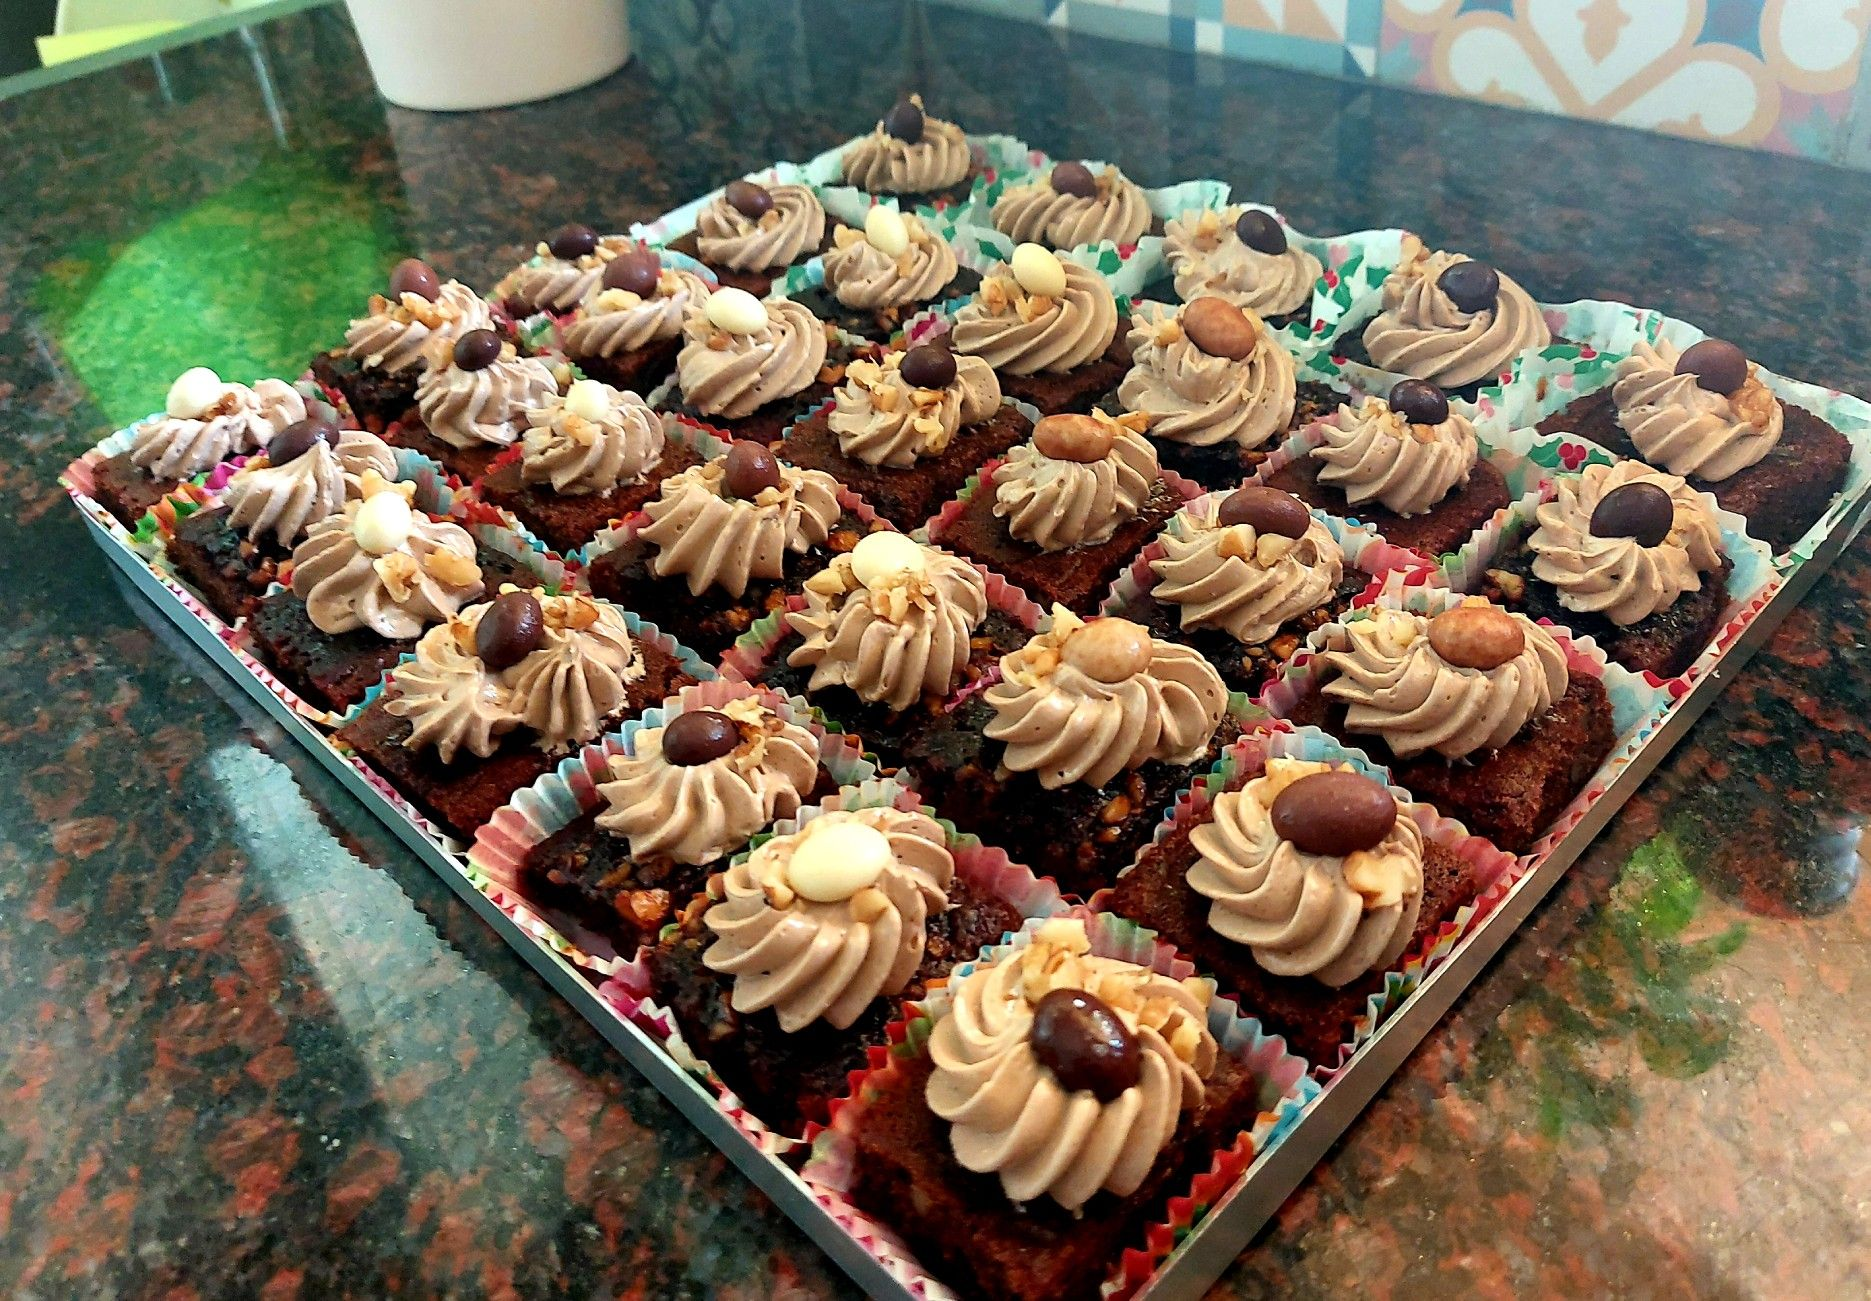 Coffee Date Cake Squares With Mocha Buttercream And Chocolate Coated Coffee Beans In 2020 Chocolate Coated Coffee Bean Date Cake Chocolate Coating